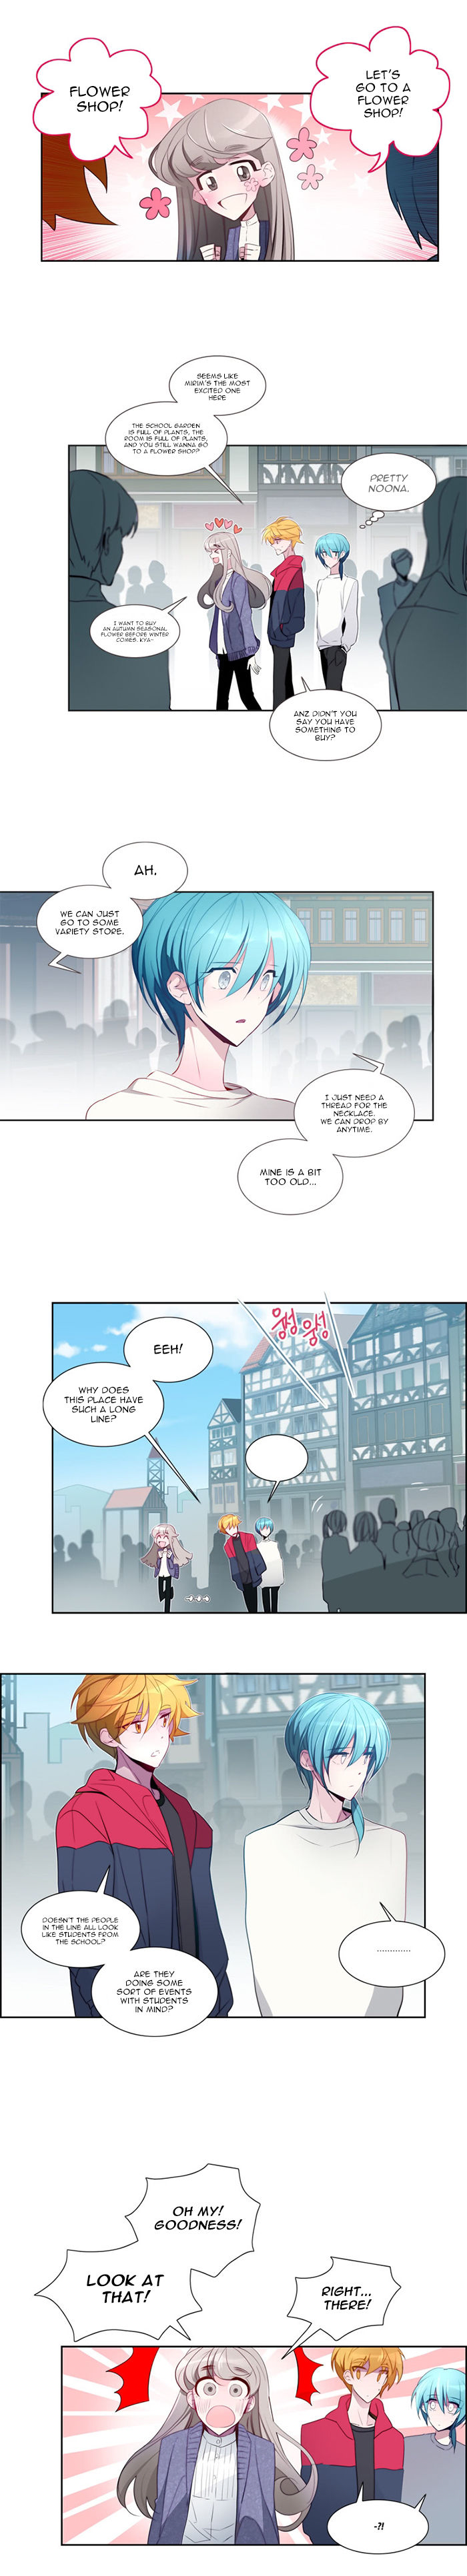 Anz 23 Page 2